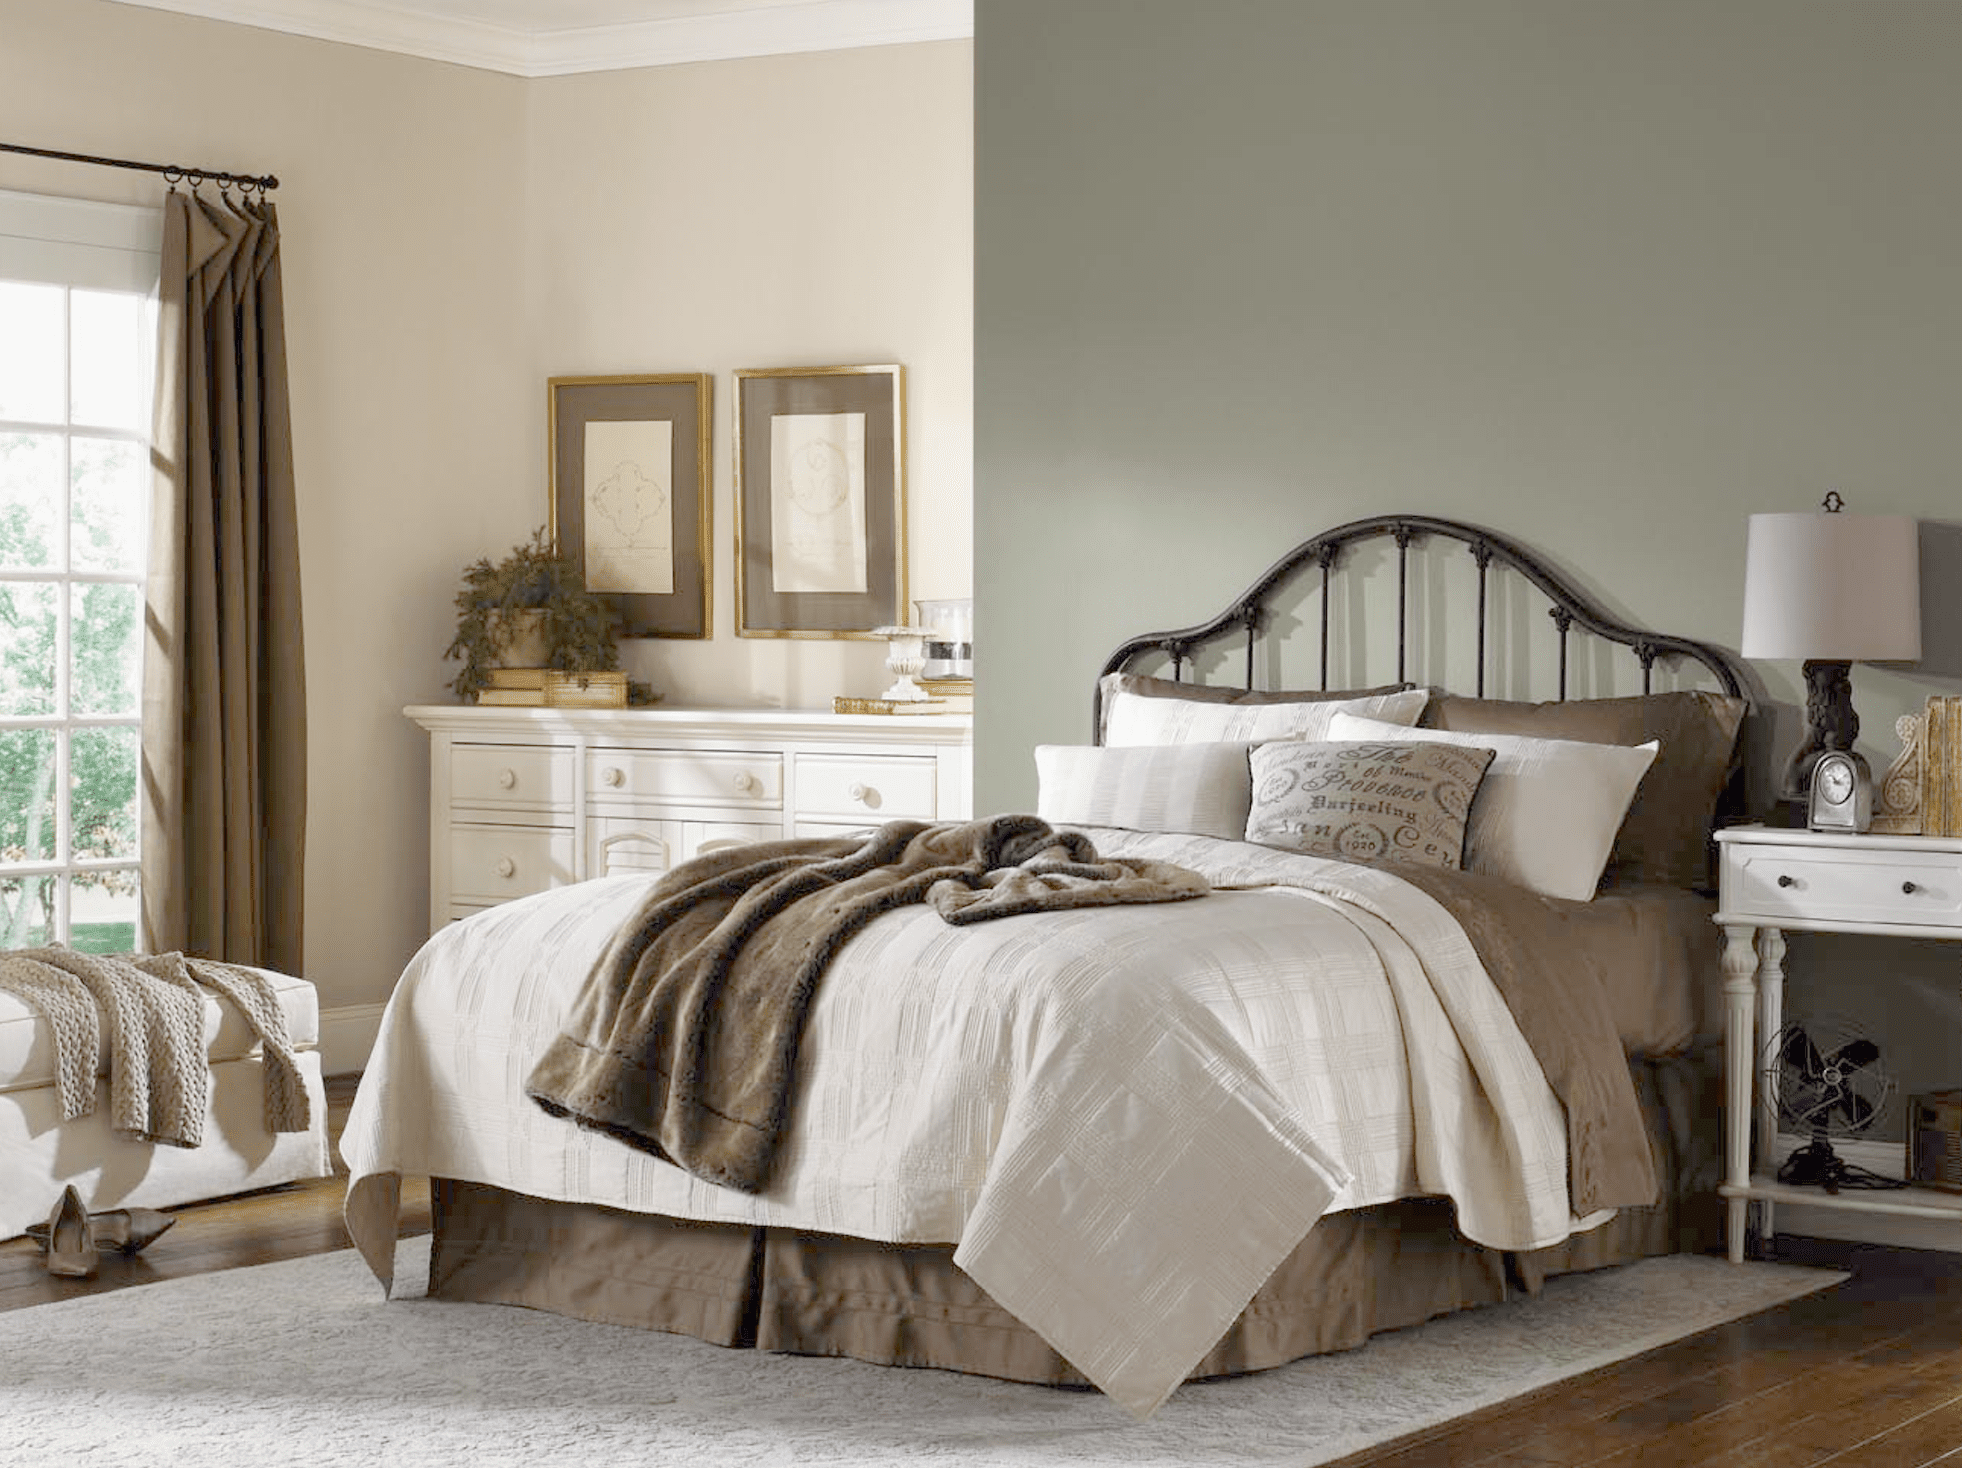 8 relaxing sherwin williams paint colors for bedrooms 11823 | screen shot 2015 03 30 at 4 08 30 pm 56a192e65f9b58b7d0c0c291